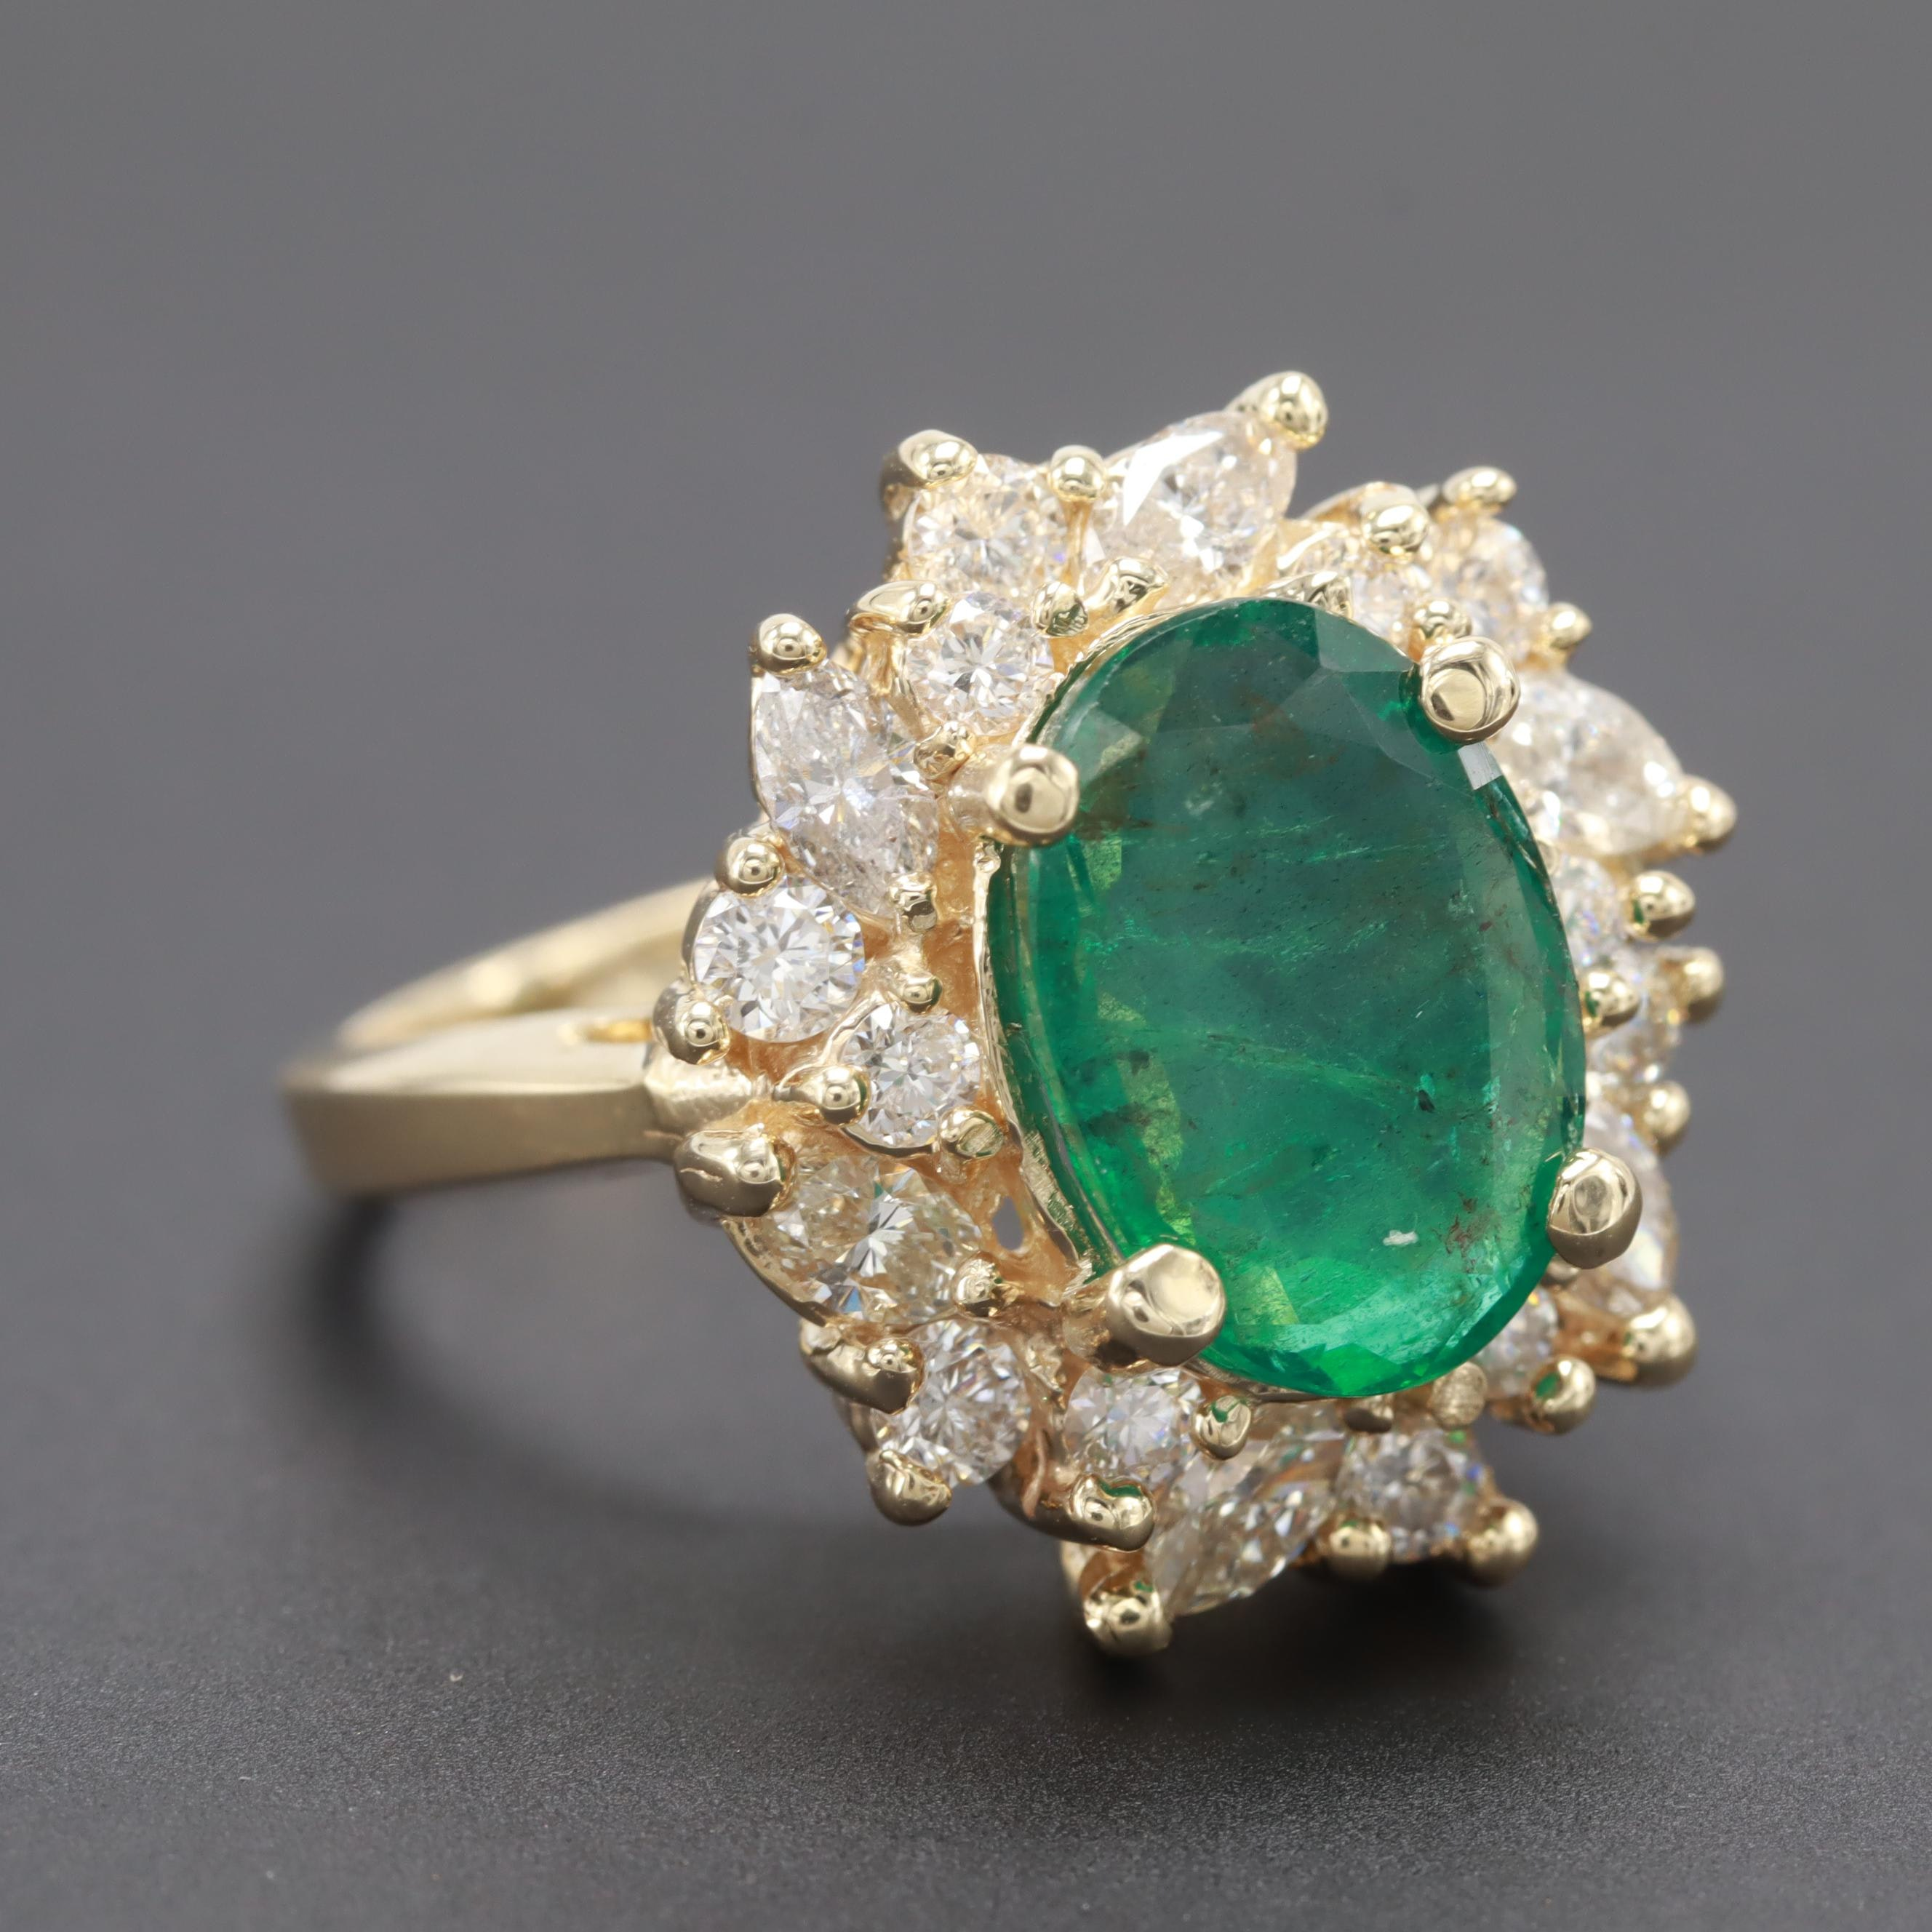 14K Yellow Gold 2.28 CT Emerald and 1.48 CTW Diamond Ring